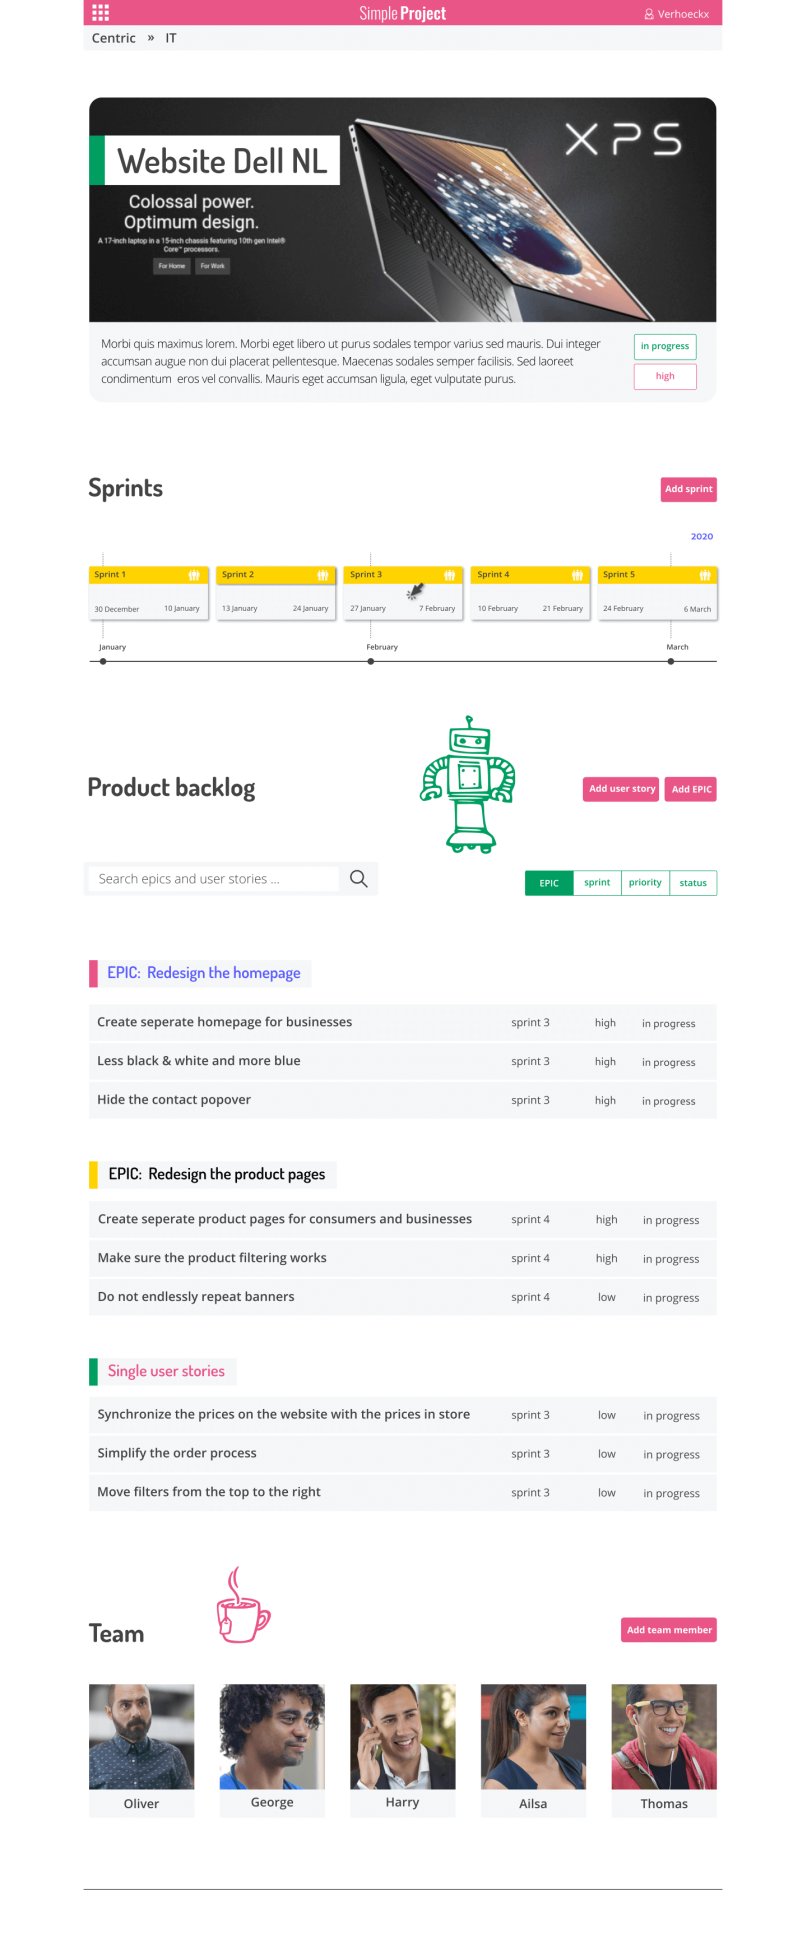 Design of the project dashboard of Simple Project